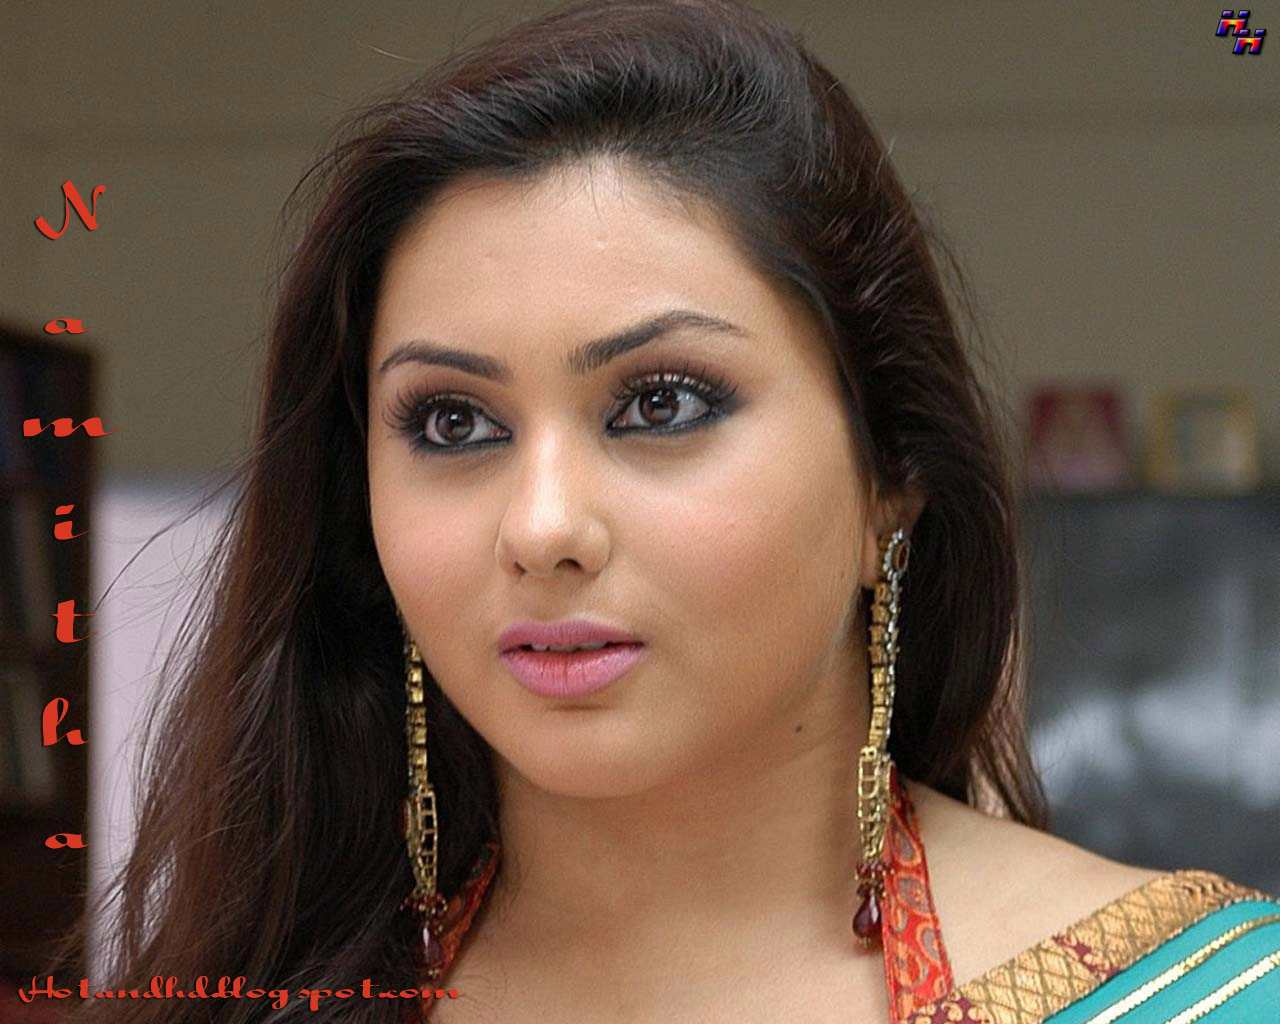 Namitha Hot And Hd Nude Boobs Wallpapers And Pictures -4818